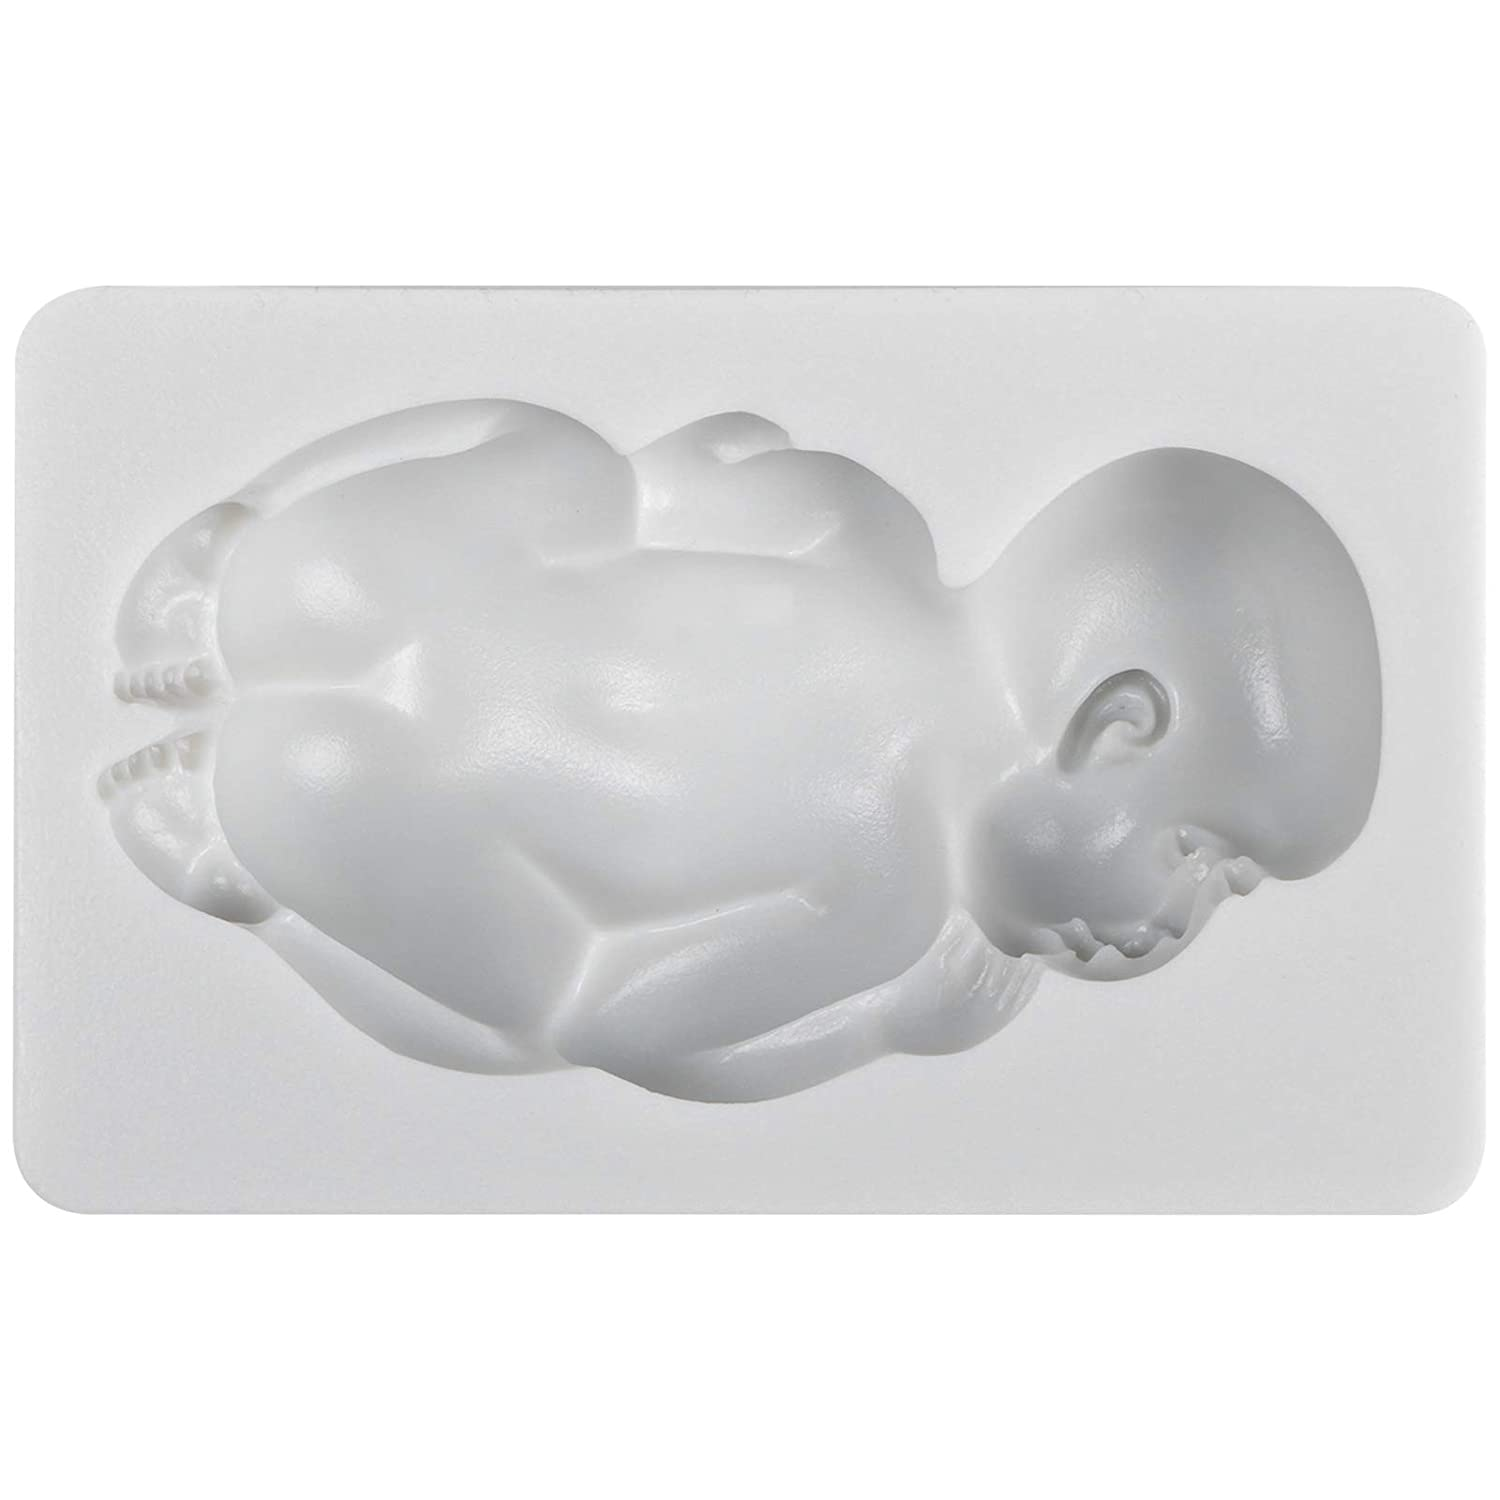 Funshowcase Large Sleeping Baby Silicone Mold for Cake Decoration Candy Soap Making